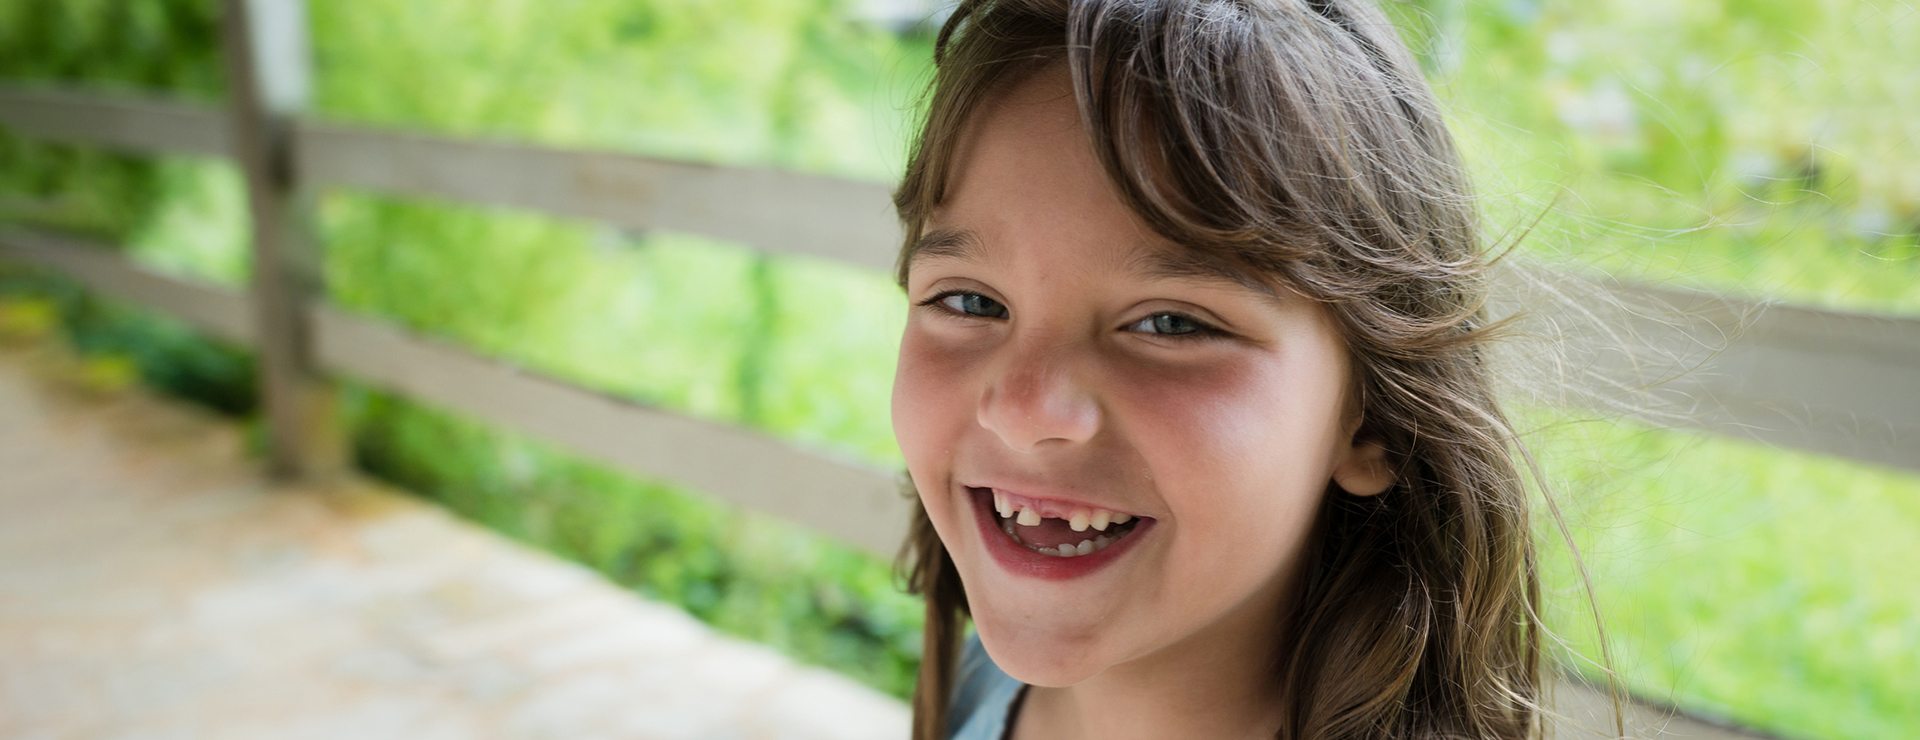 A little girl smiles broadly, showing her missing teeth.